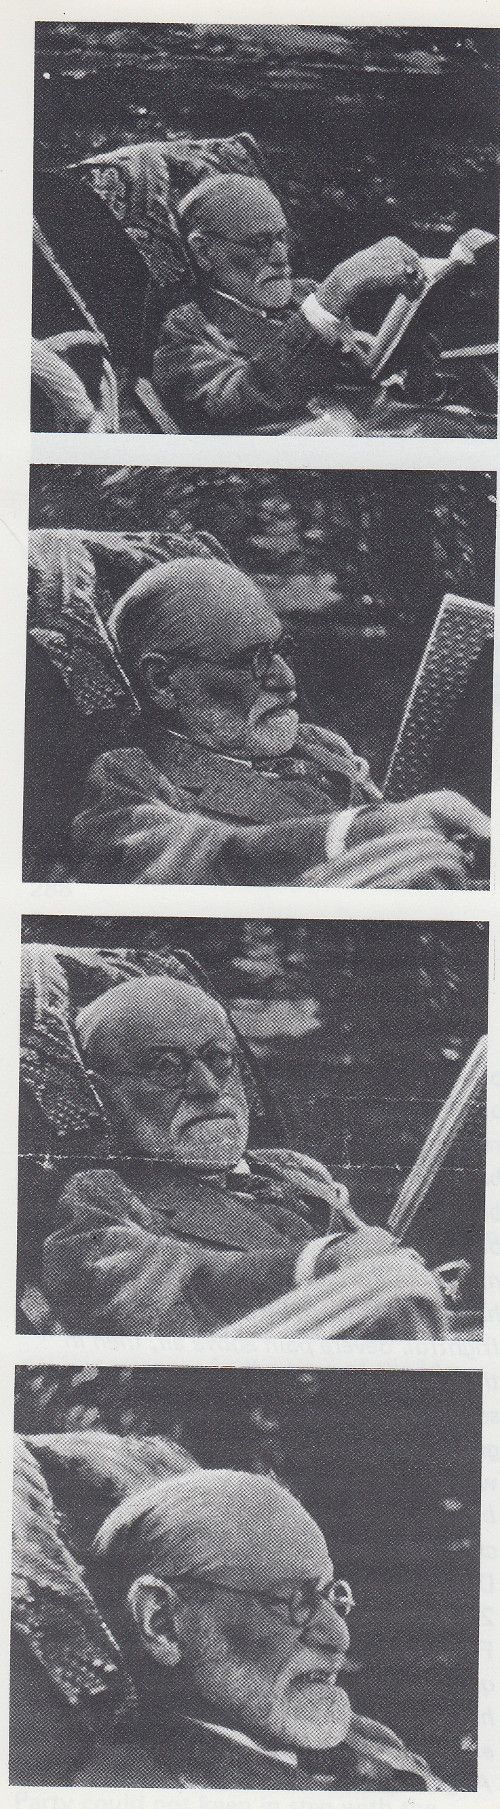 best ideas about sigmund freud books sigmund sigmund freud reading